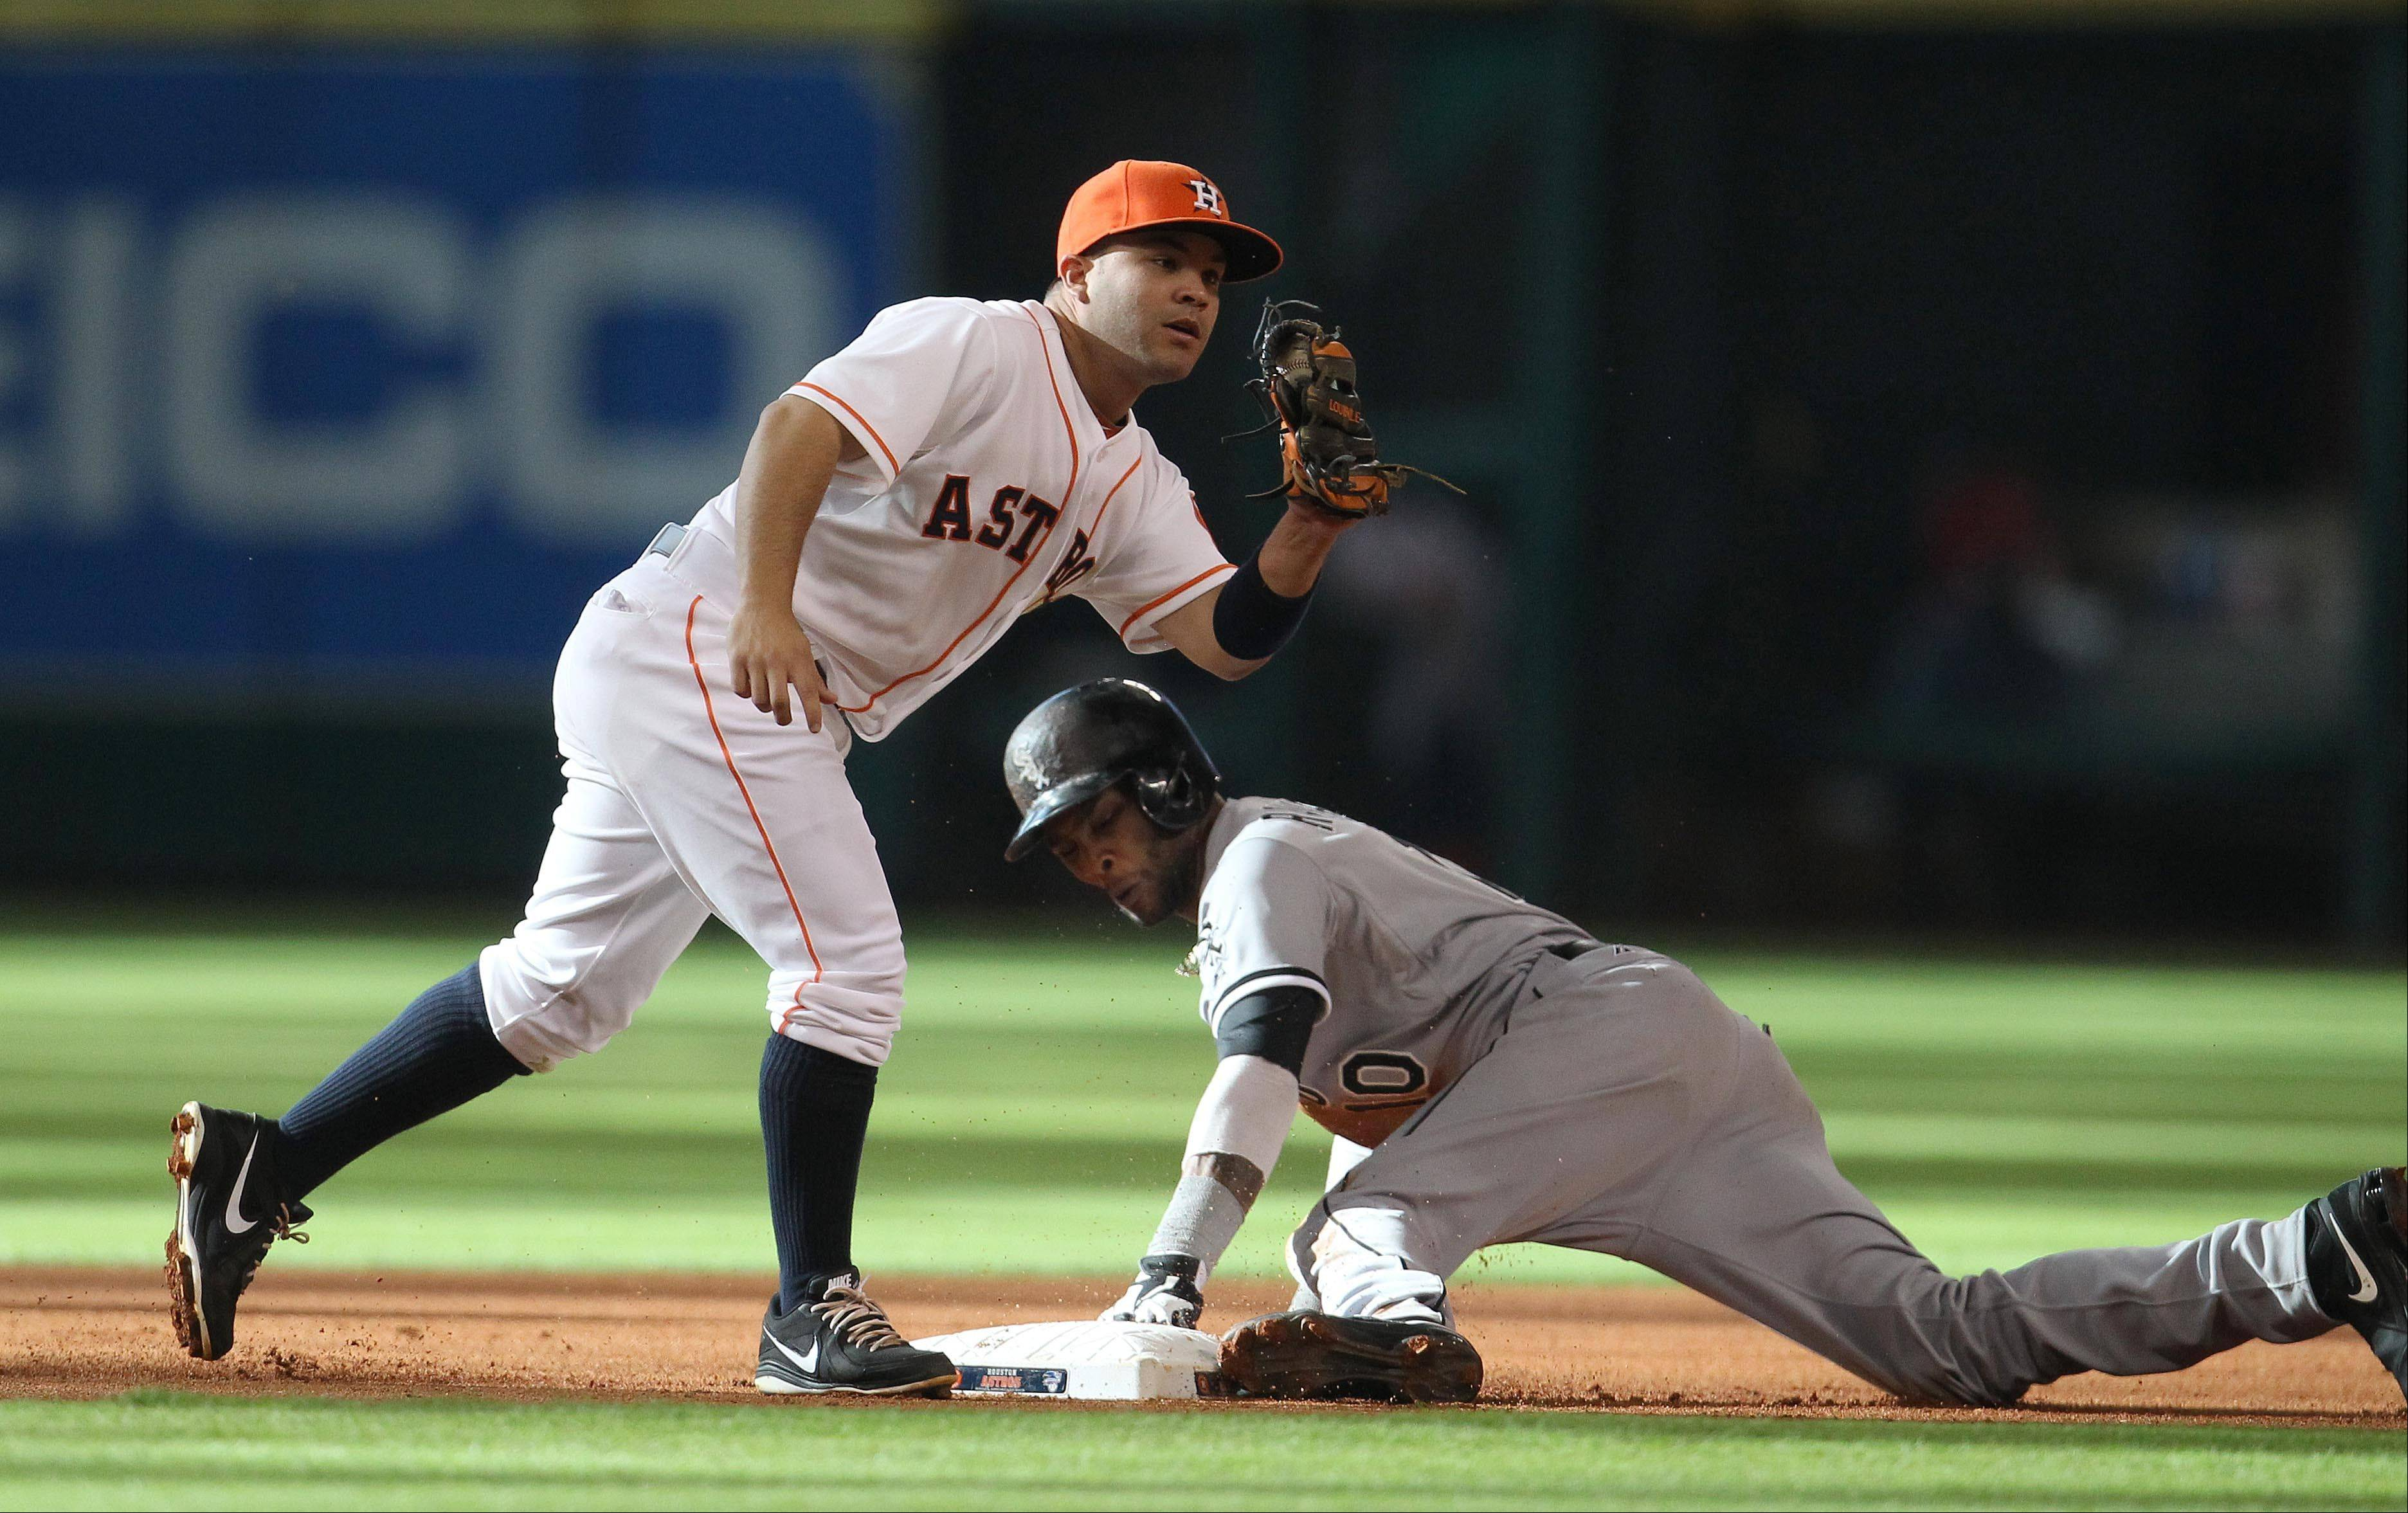 Houston Astros second baseman Jose Altuve tries to get the tag on Chicago White Sox's Alexei Ramirez (10) as he steals second base during the first inning of a baseball game, Saturday, June 15, 2013, in Houston.